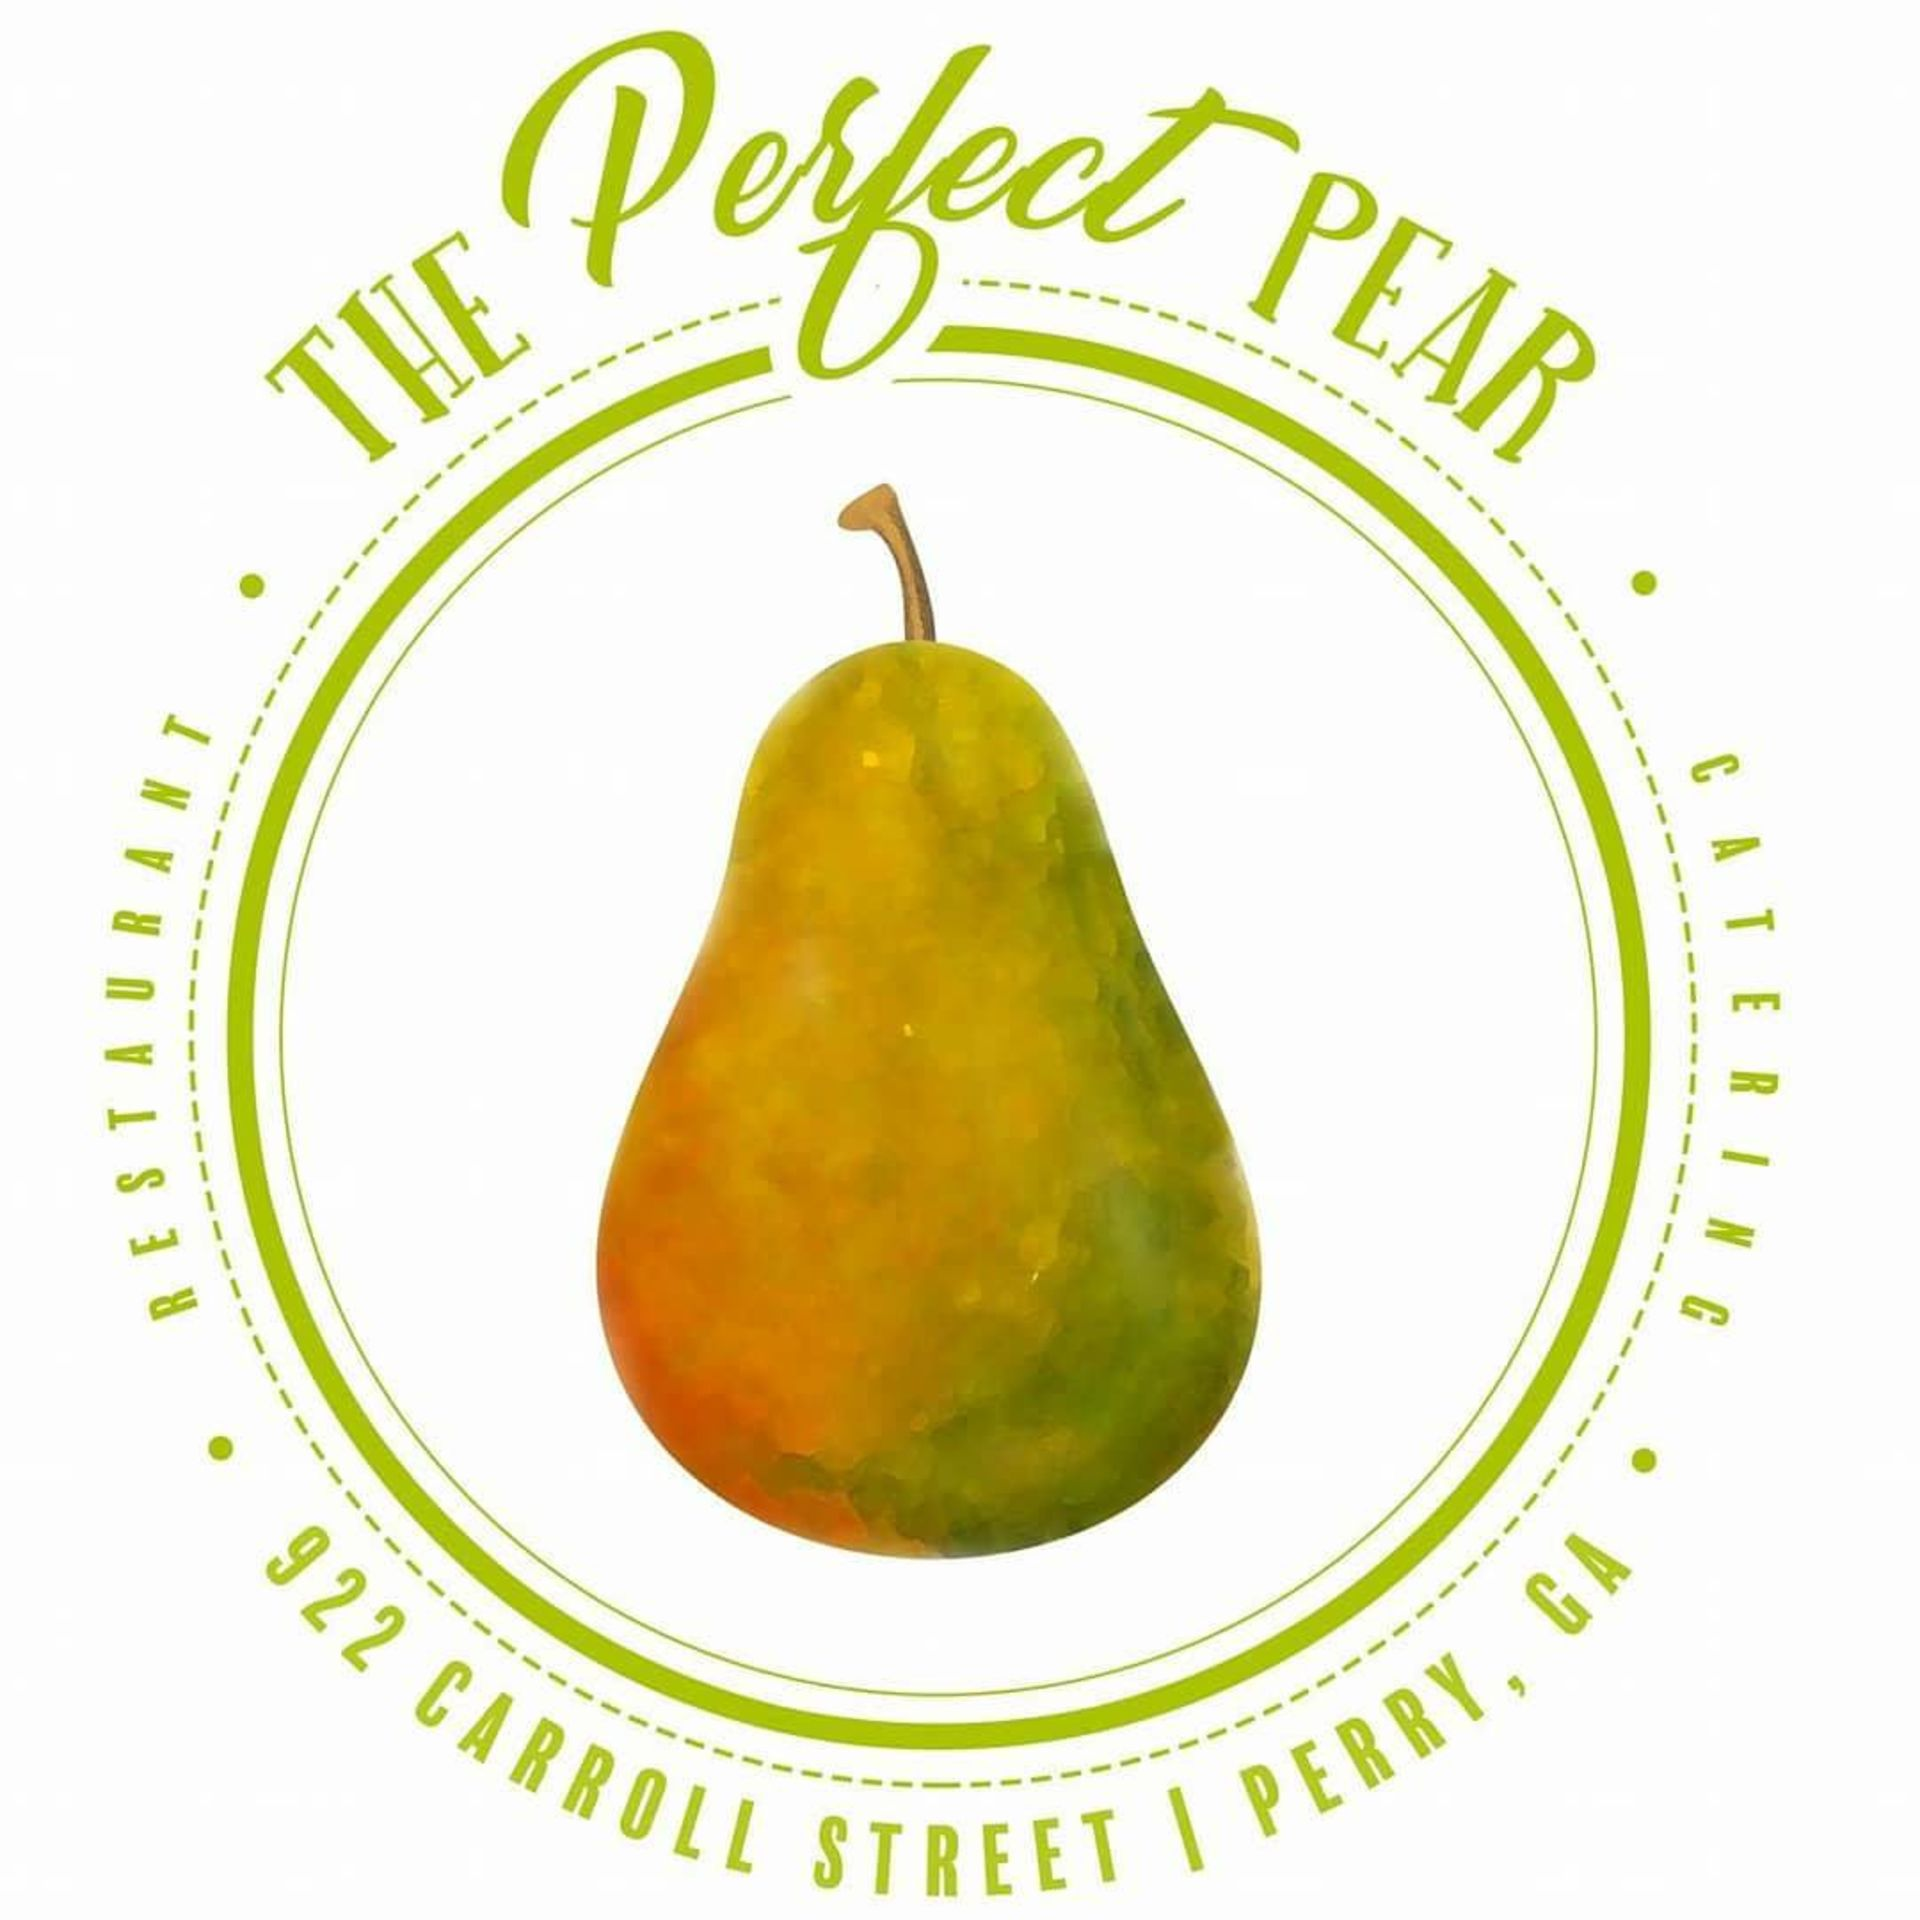 The Perfect Pear Restaurant and Catering